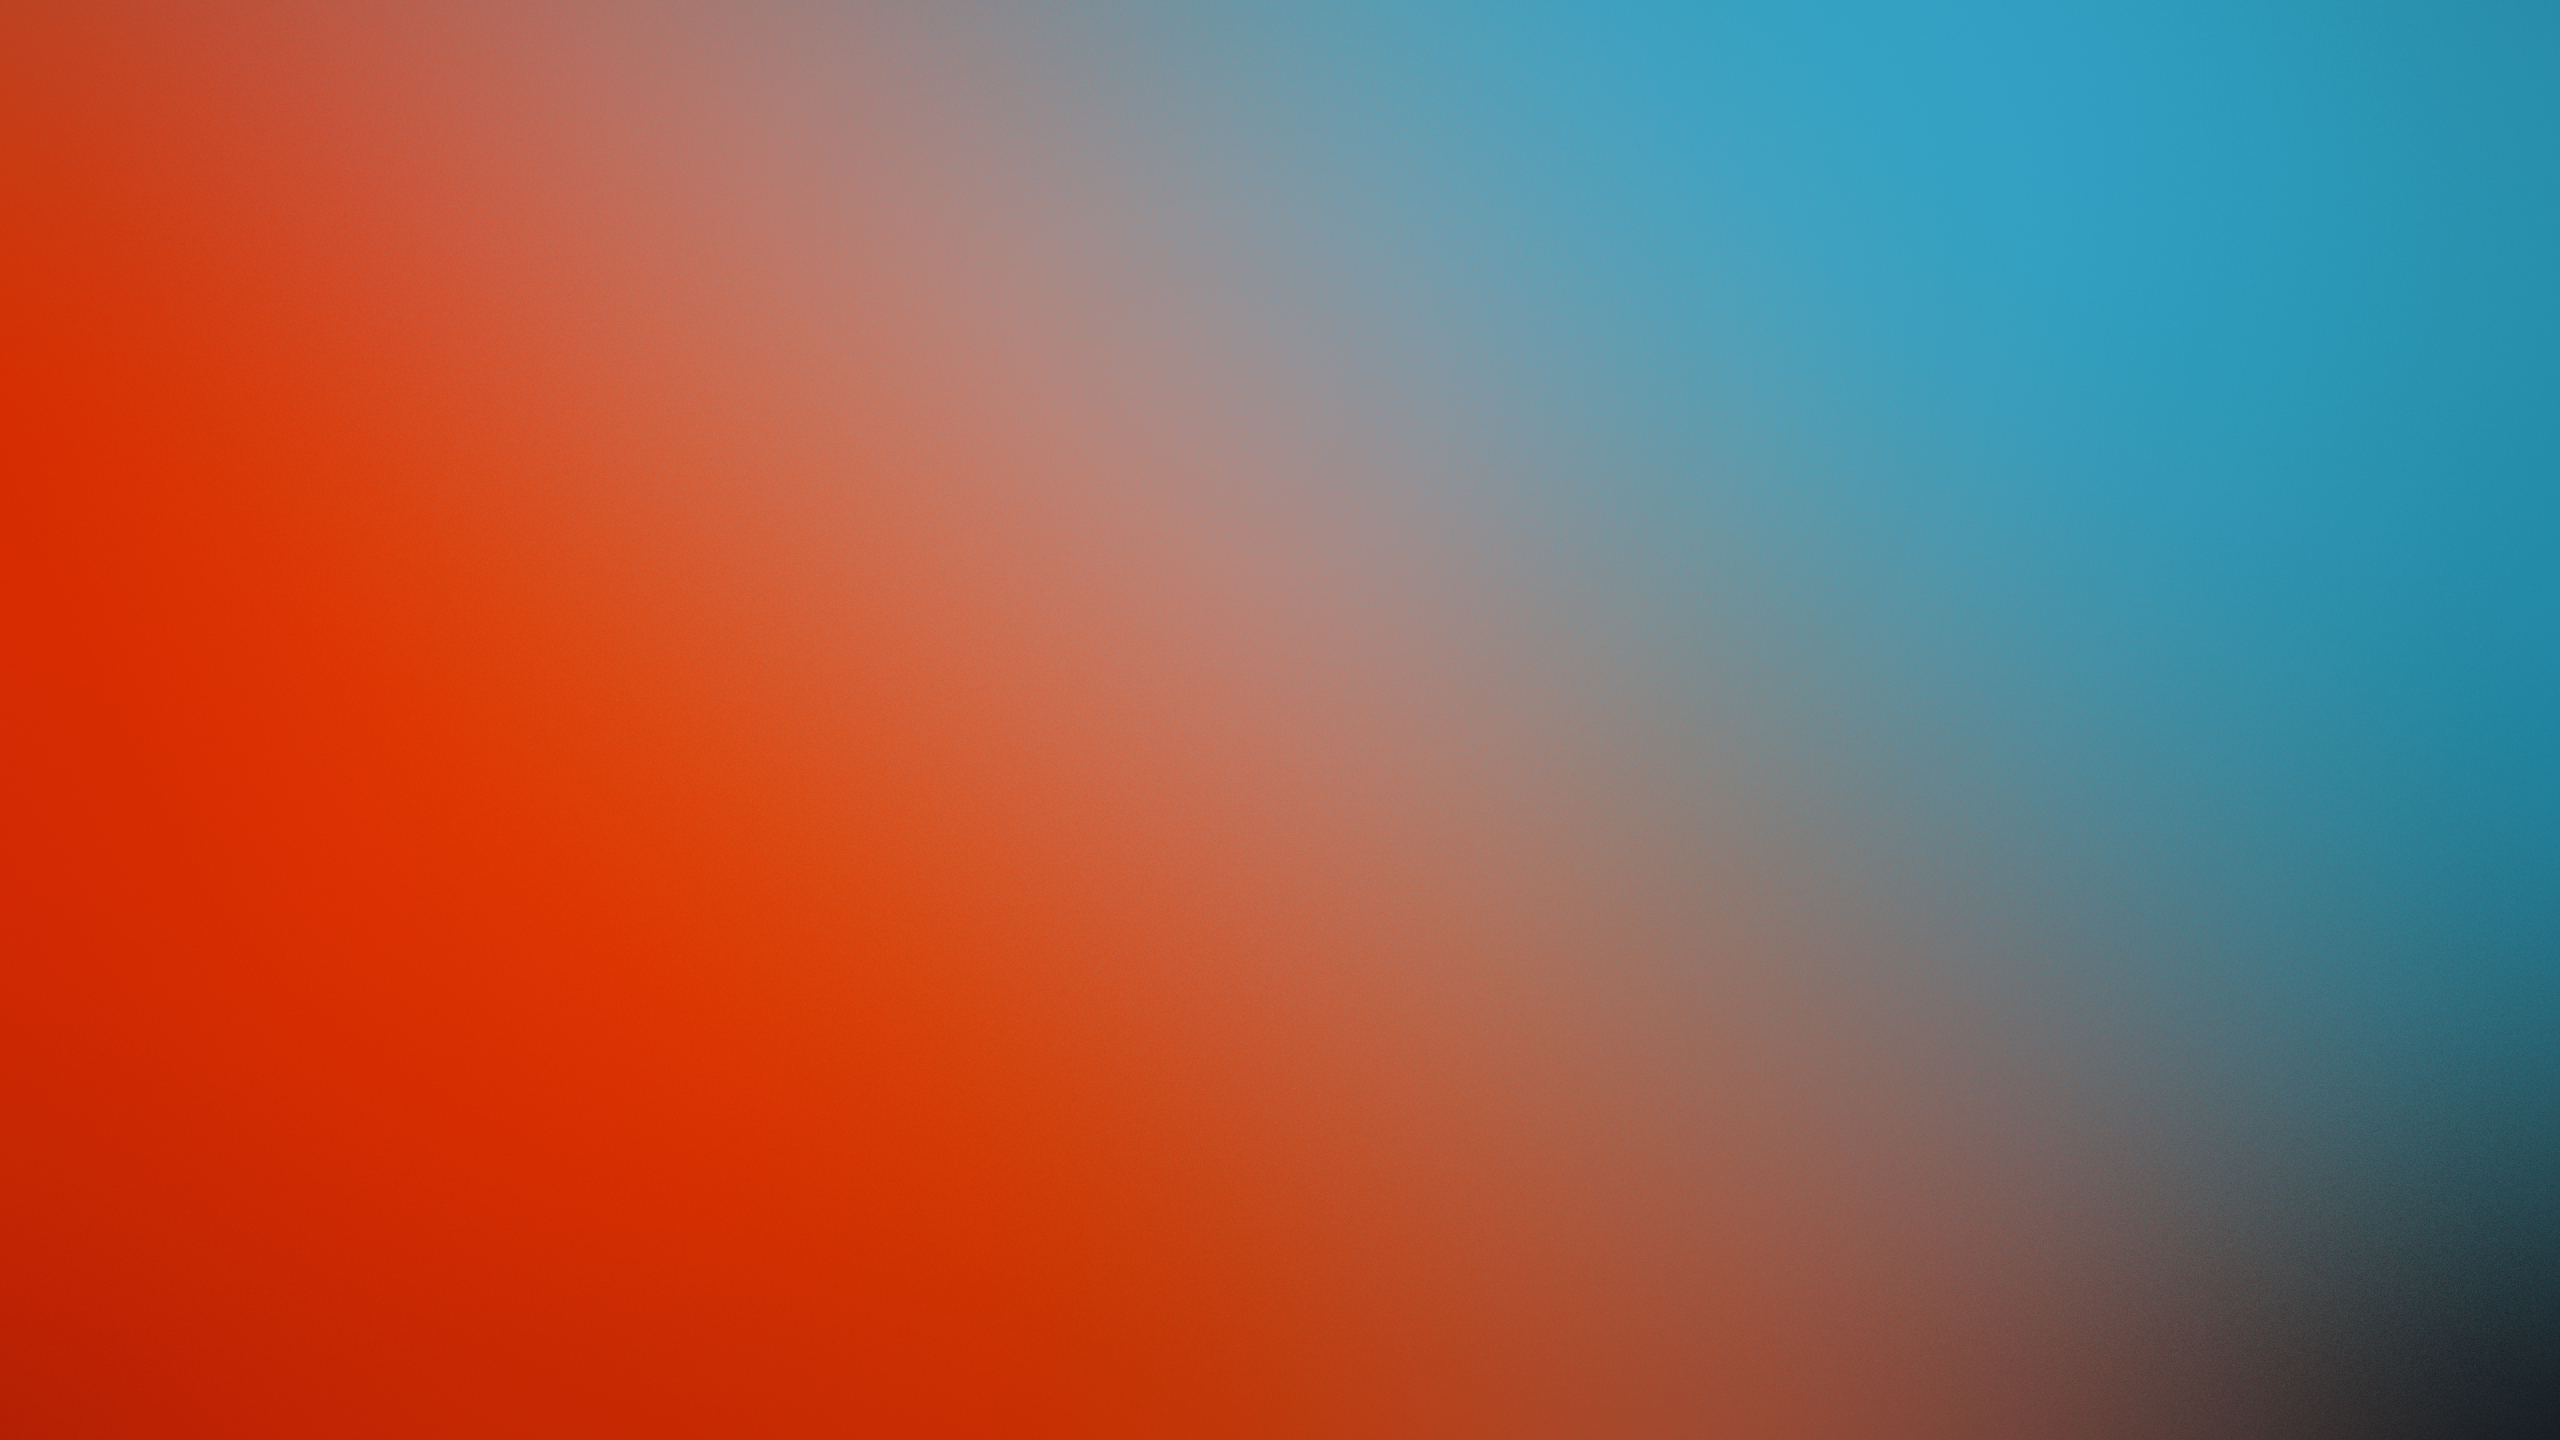 2560x1440 Orange And Blue Fire And Ice Gradient 1440p